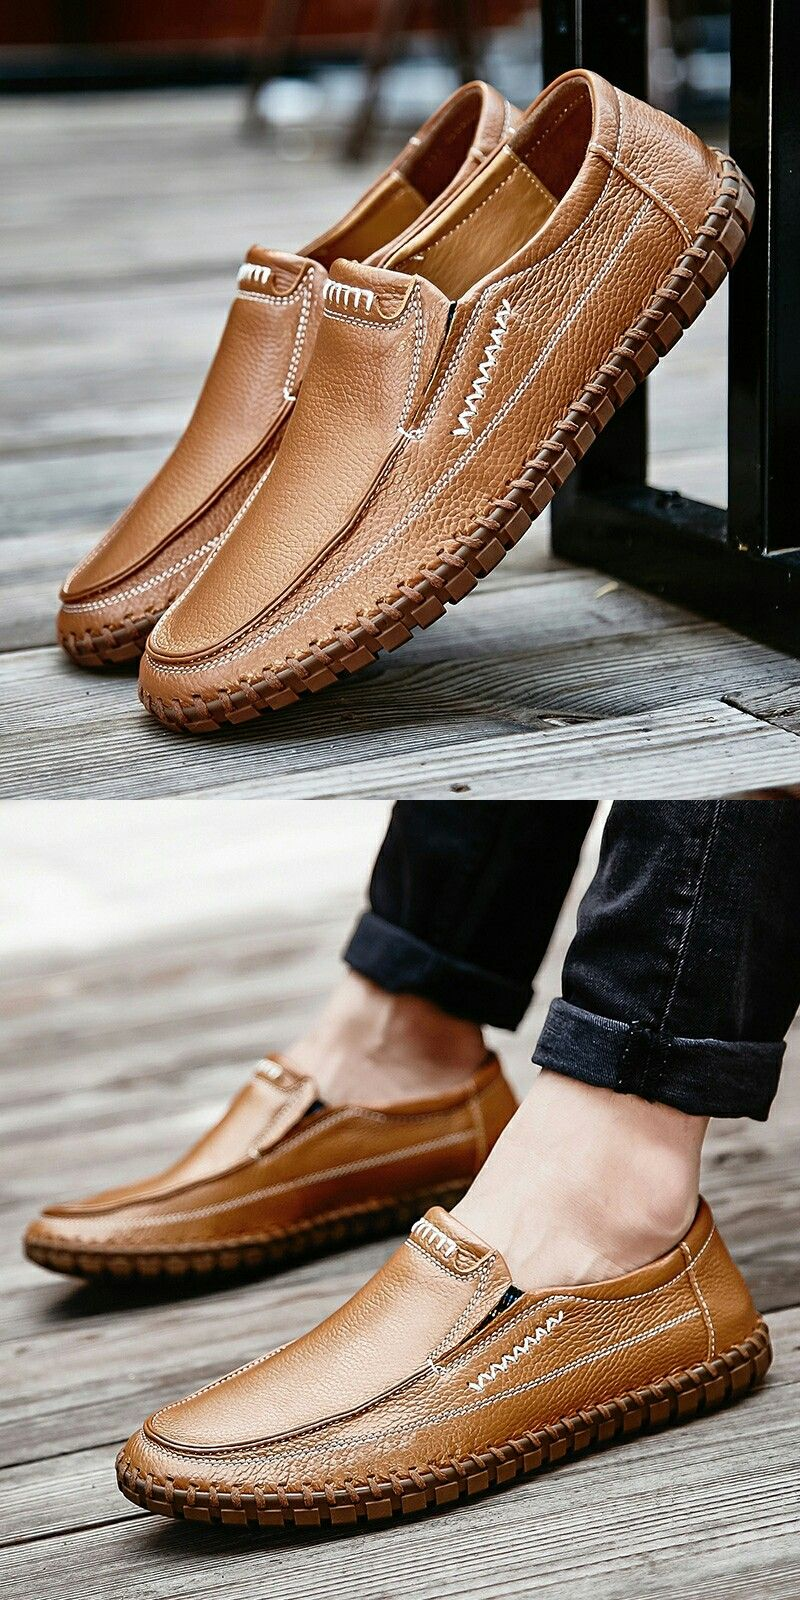 af88811d07268 Amazon Handmade Summer Men's Leather Shoes Casual Slip On Driving ...